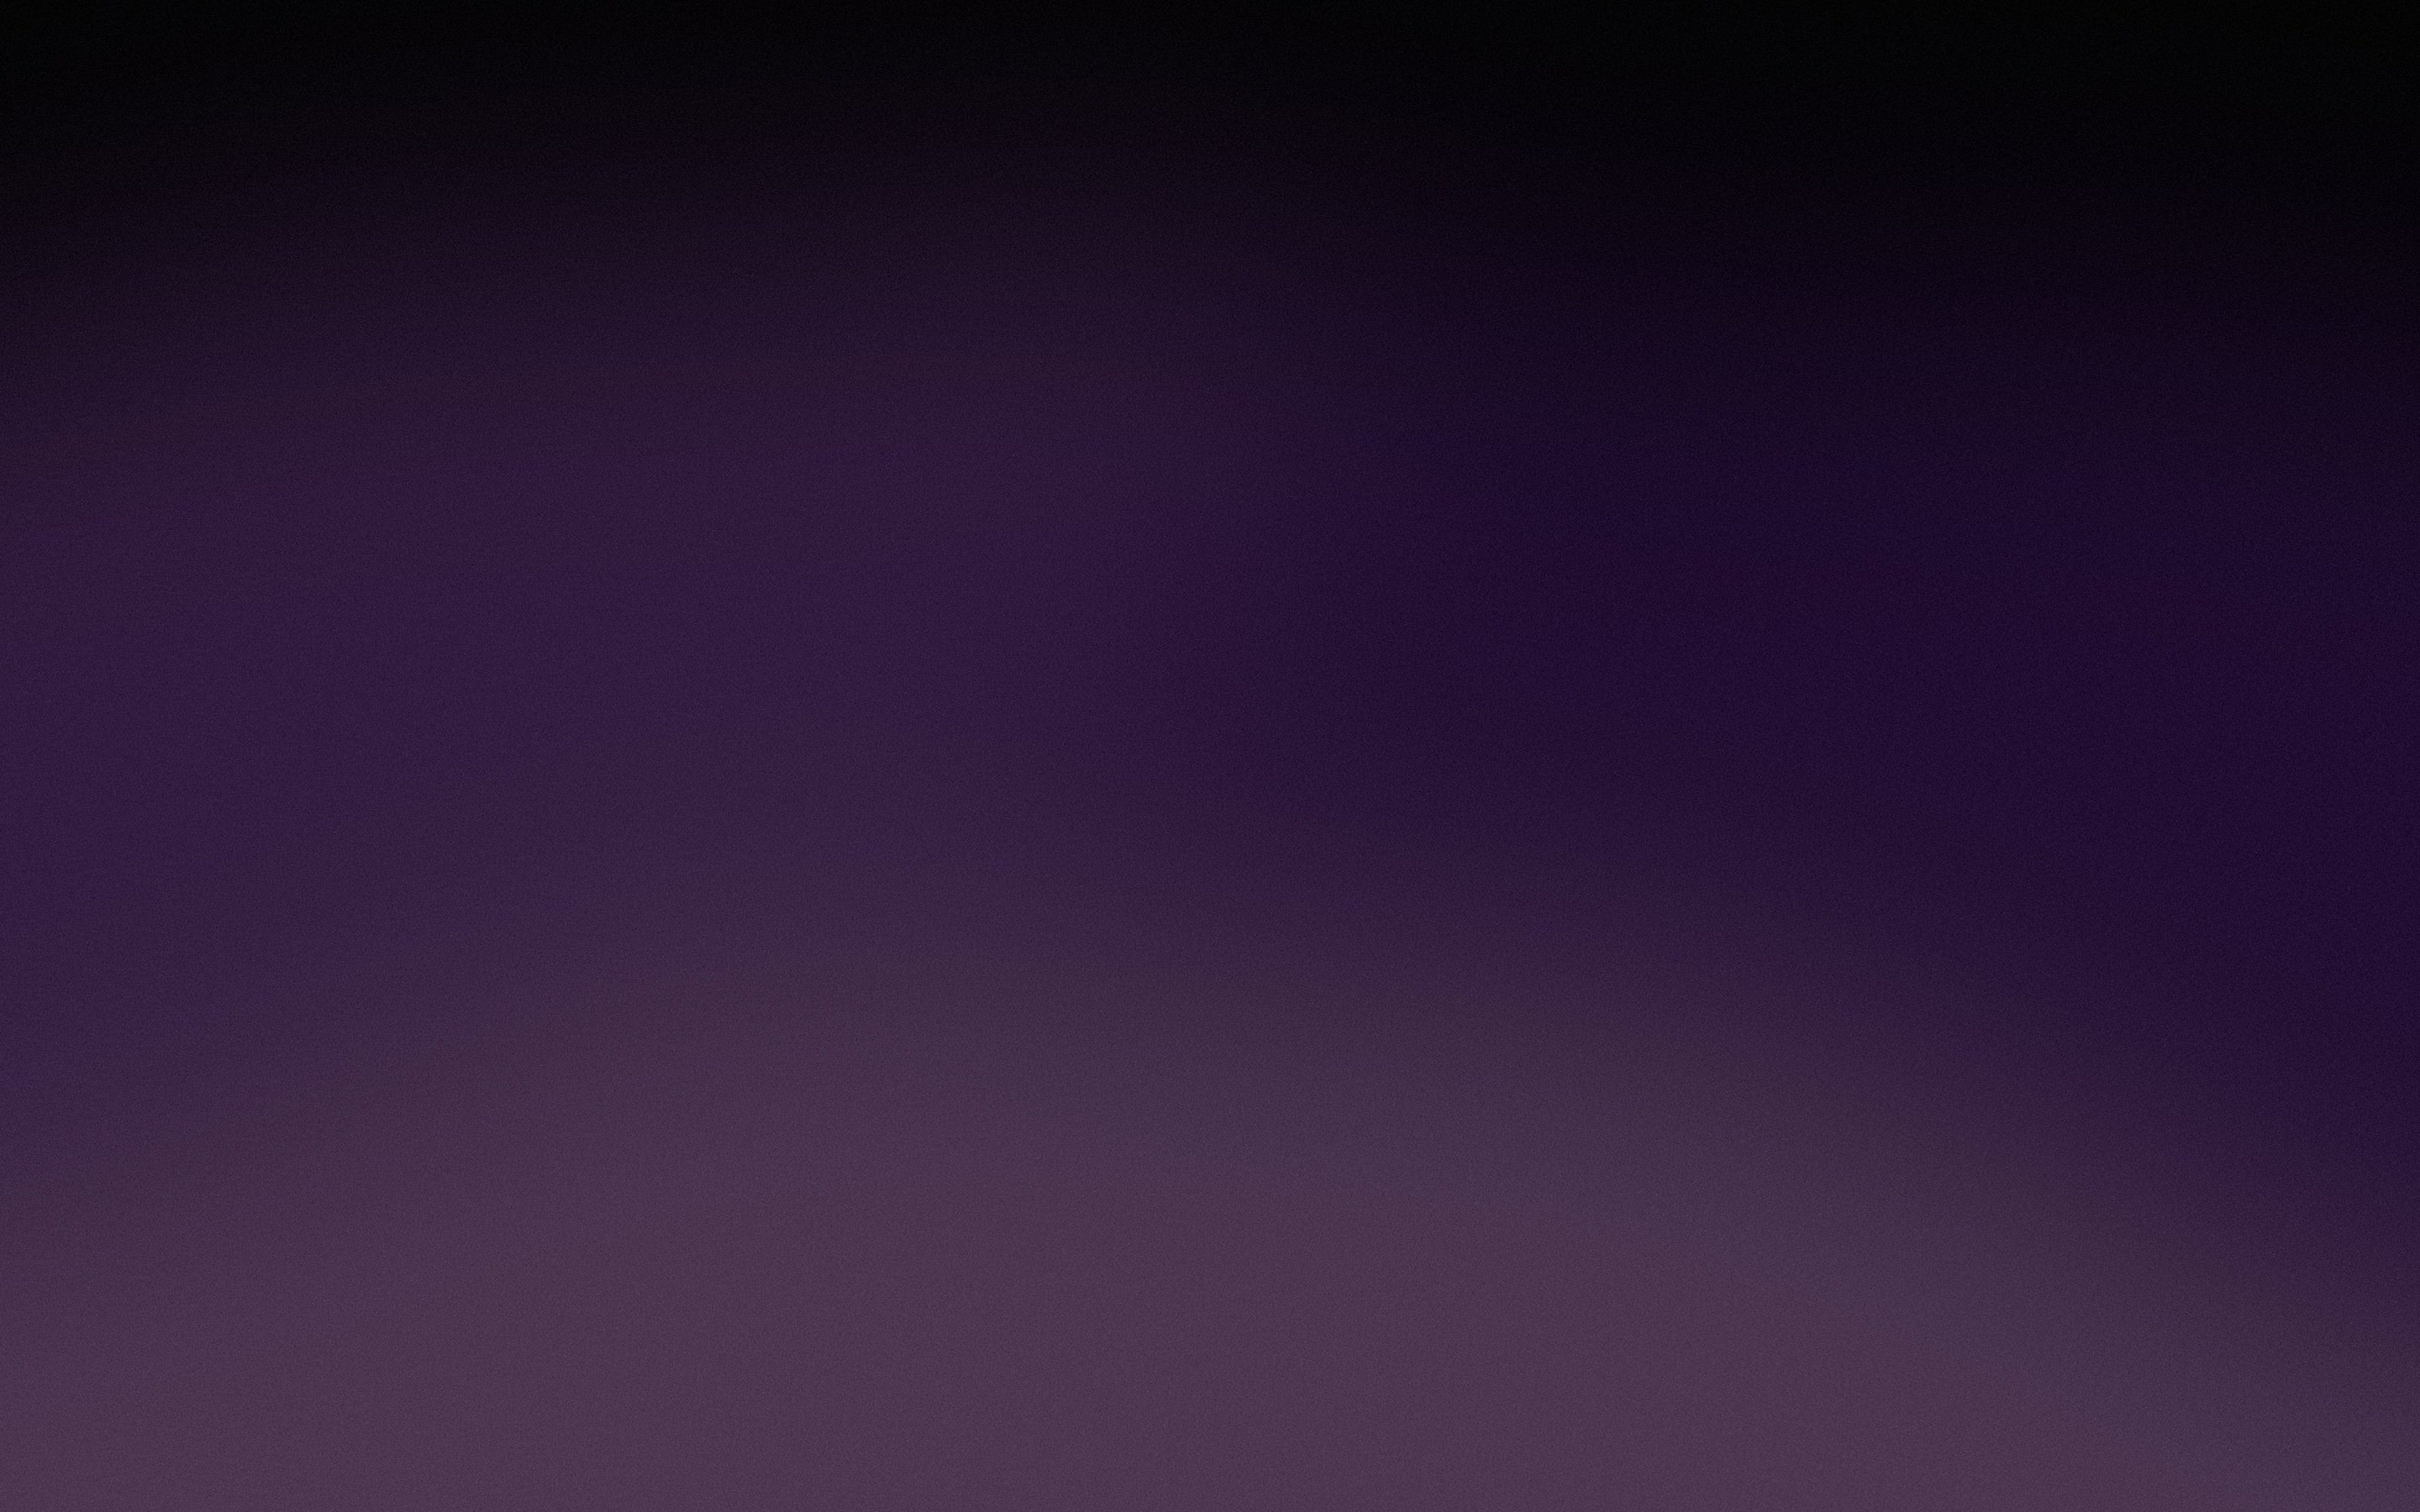 Tumblr Purple Backgrounds 67 Images